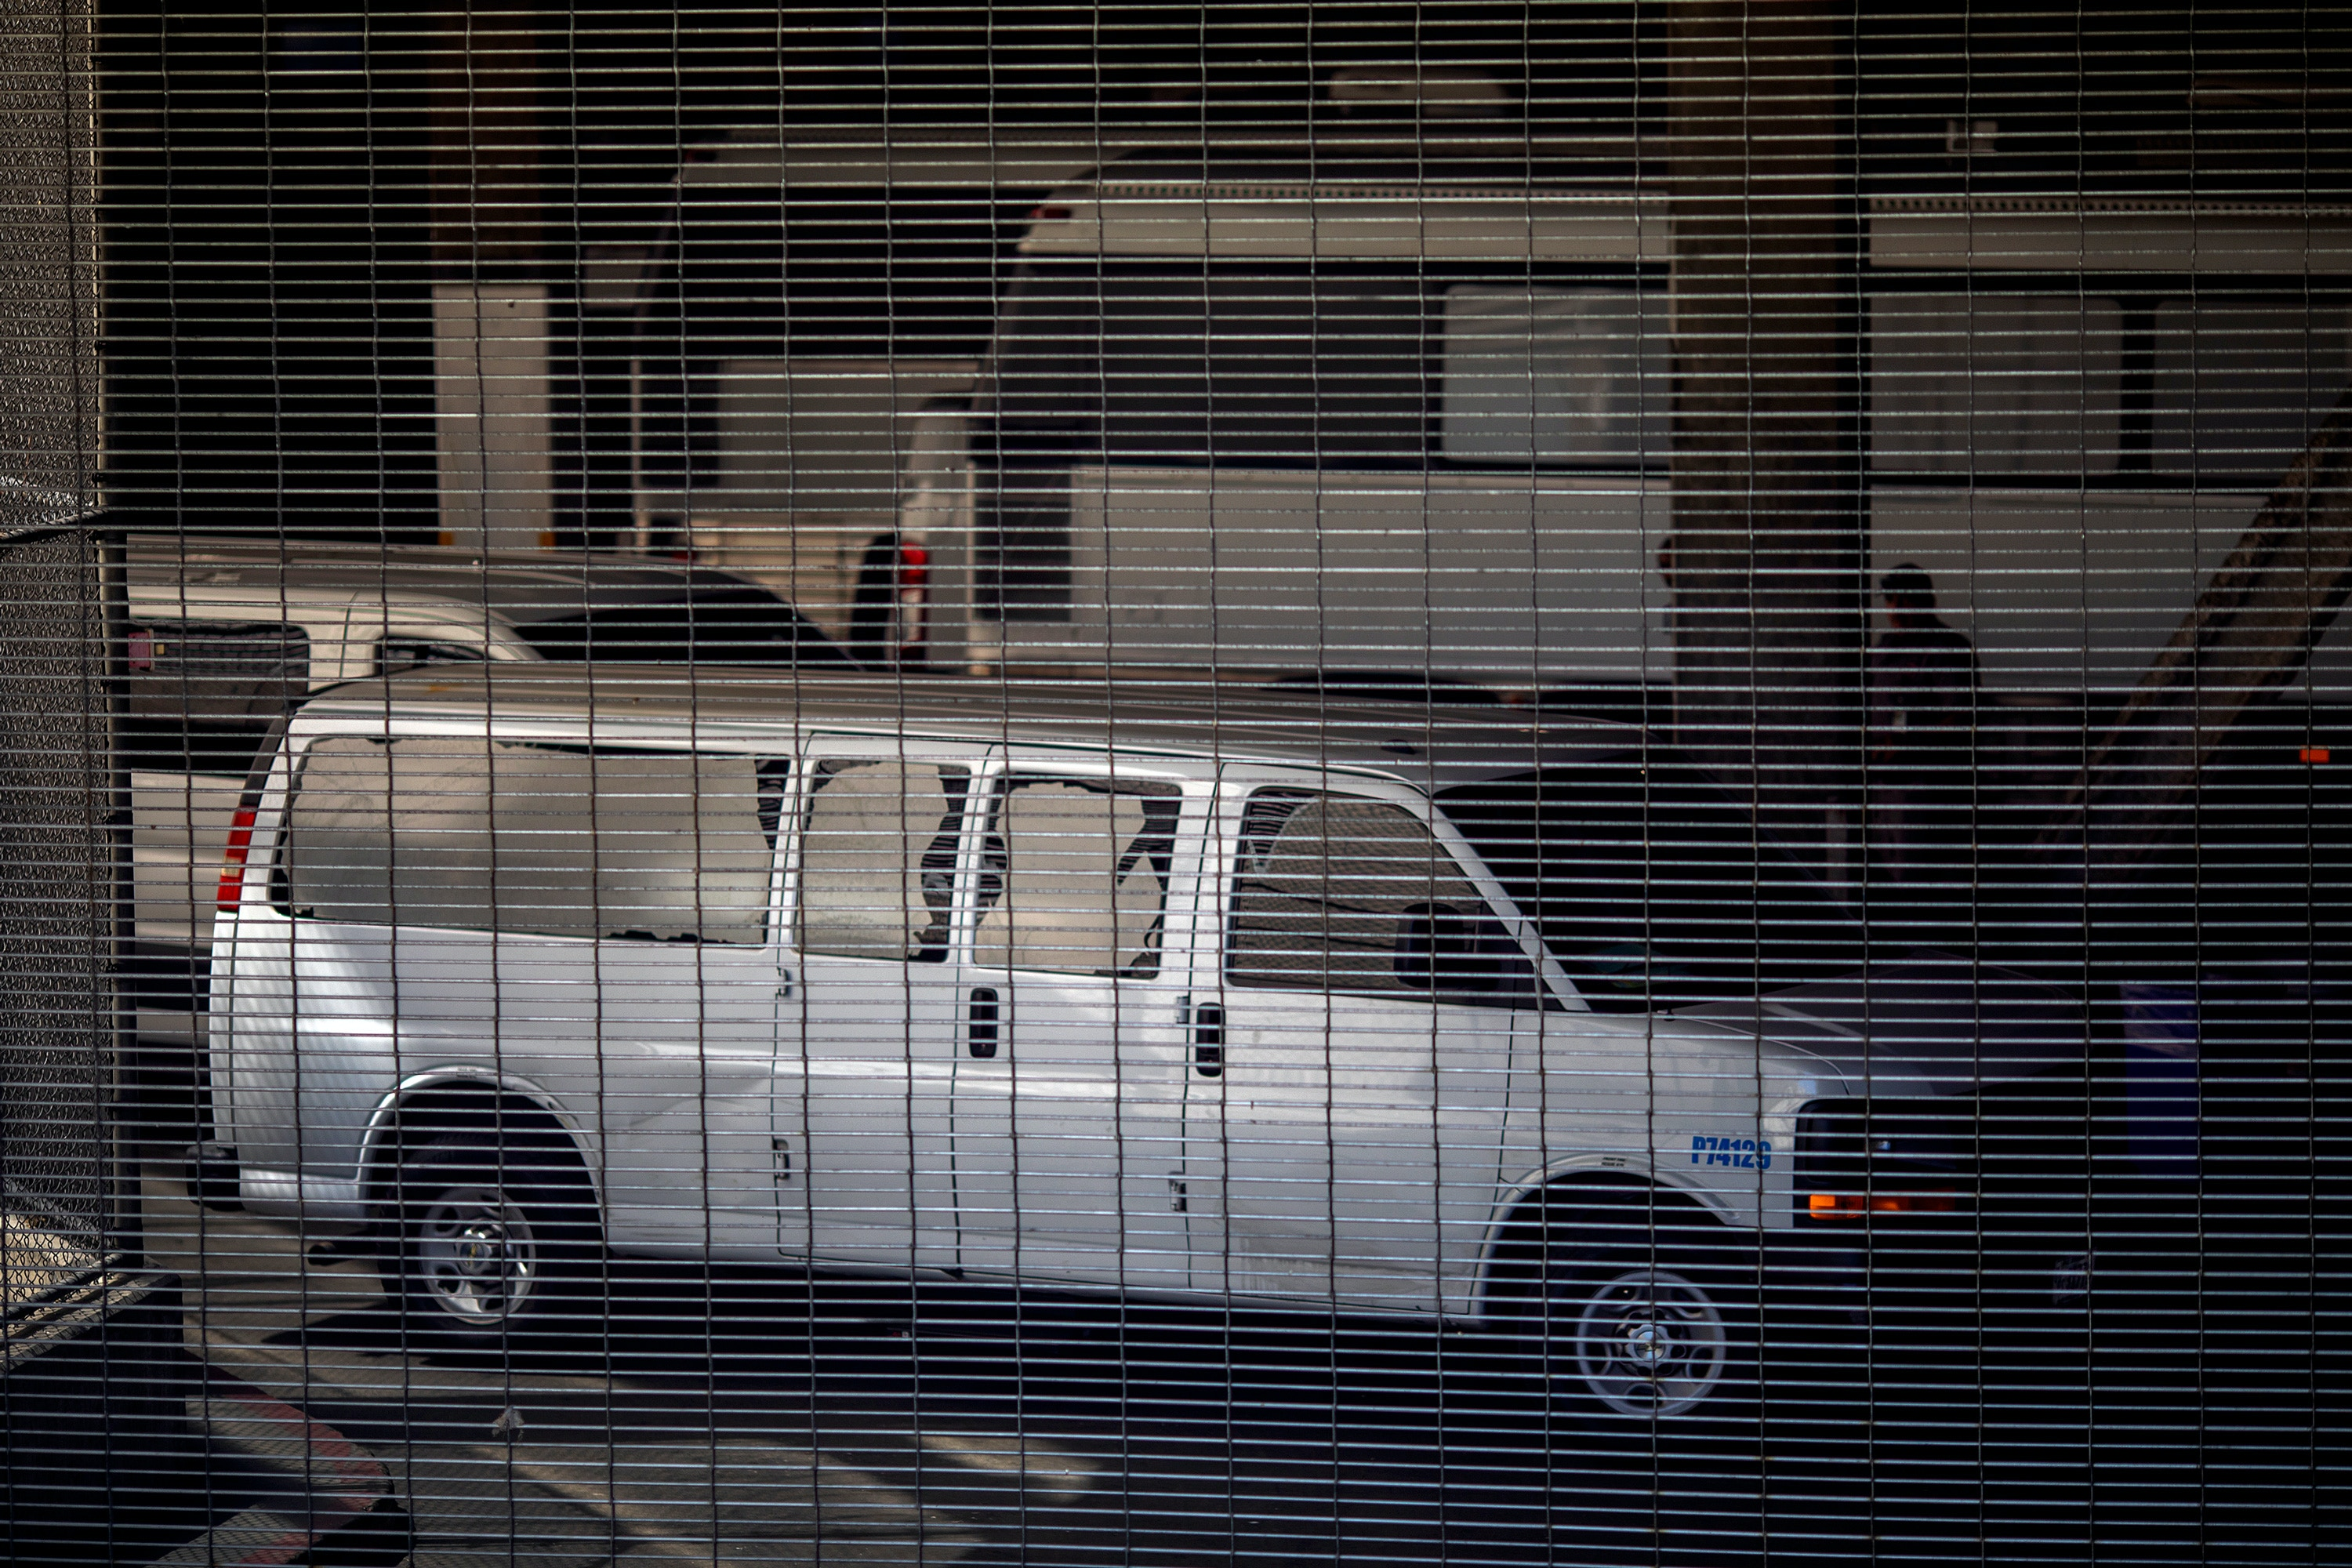 LOS ANGELES, CA - JULY 14: Vehicles are seen in an intake area under the Metropolitan Detention Center prison as mass arrests by federal immigration authorities, as ordered by the Trump administration, were supposed to begin in major cities across the nation on July 14, 2019 in Los Angeles, California. The U.S. Immigration and Customs Enforcement was expected to be target hundreds of Angelenos for deportation, plus family members and others they encounter and suspect of being undocumented. The city of Los Angeles declared itself a sanctuary city to reflect its policy since the 1970s of not allowing police to help immigration officials because the city wants its immigrant populations to not be afraid to cooperate with police or call in crimes and emergencies. Elected officials and activists have continued to lash out against the raids.   (Photo by David McNew/Getty Images)